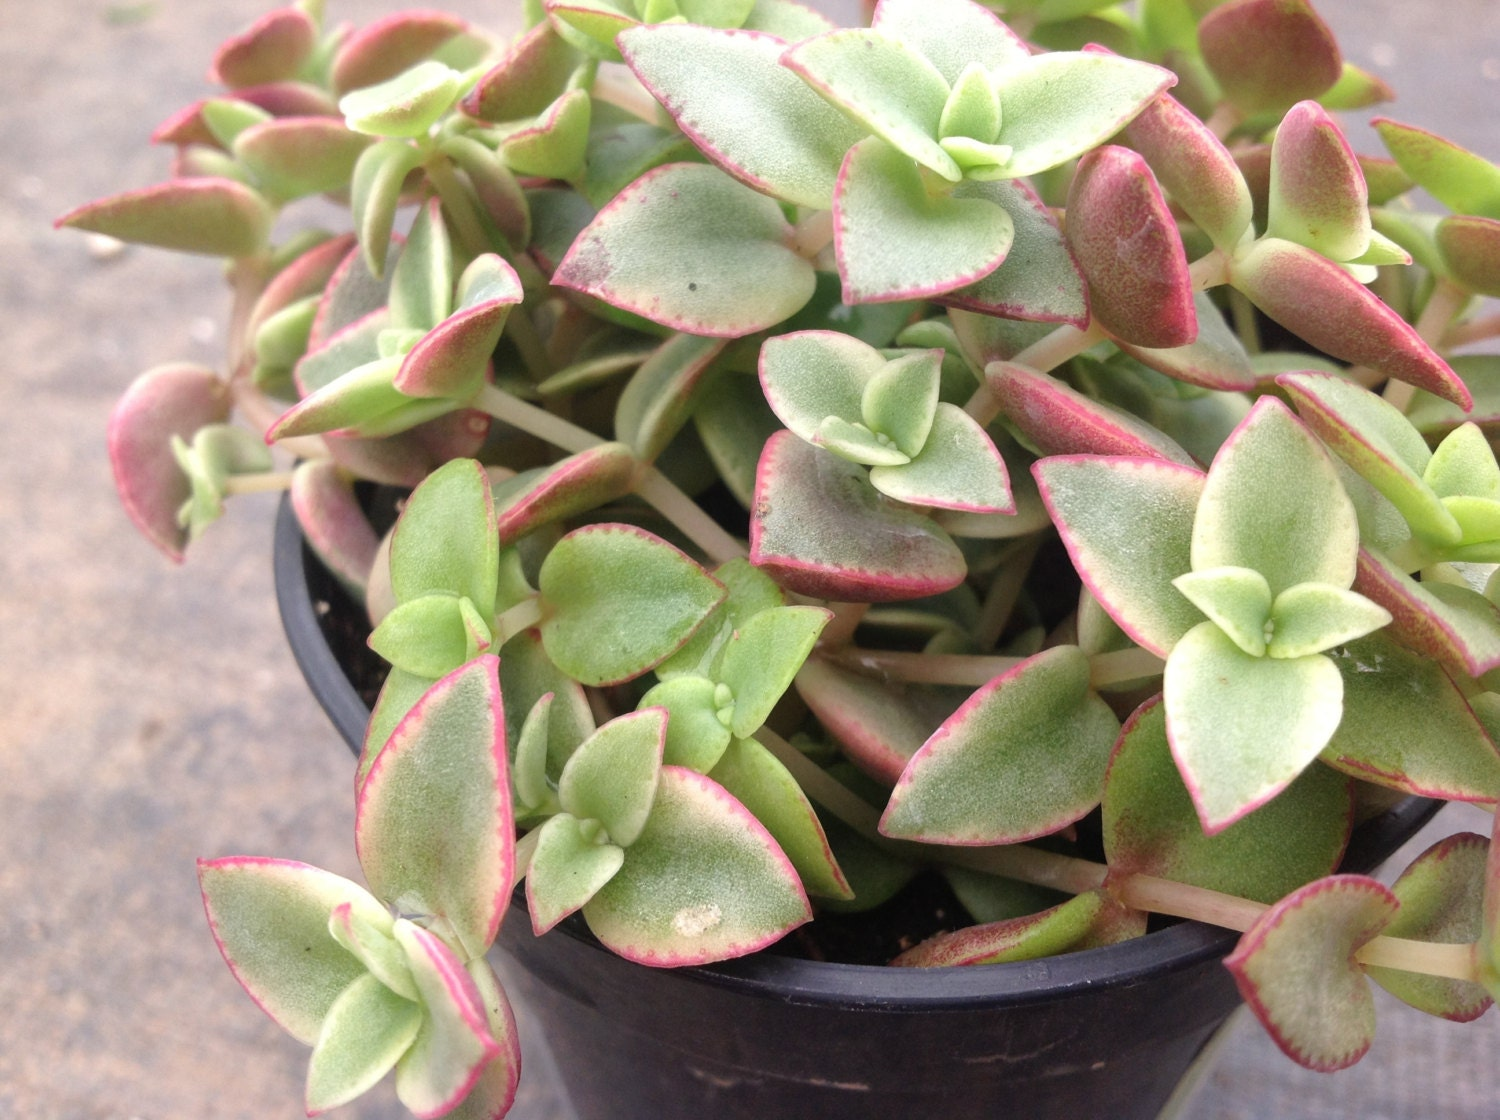 succulent crassula calico kitten or crassula marginalis rubra